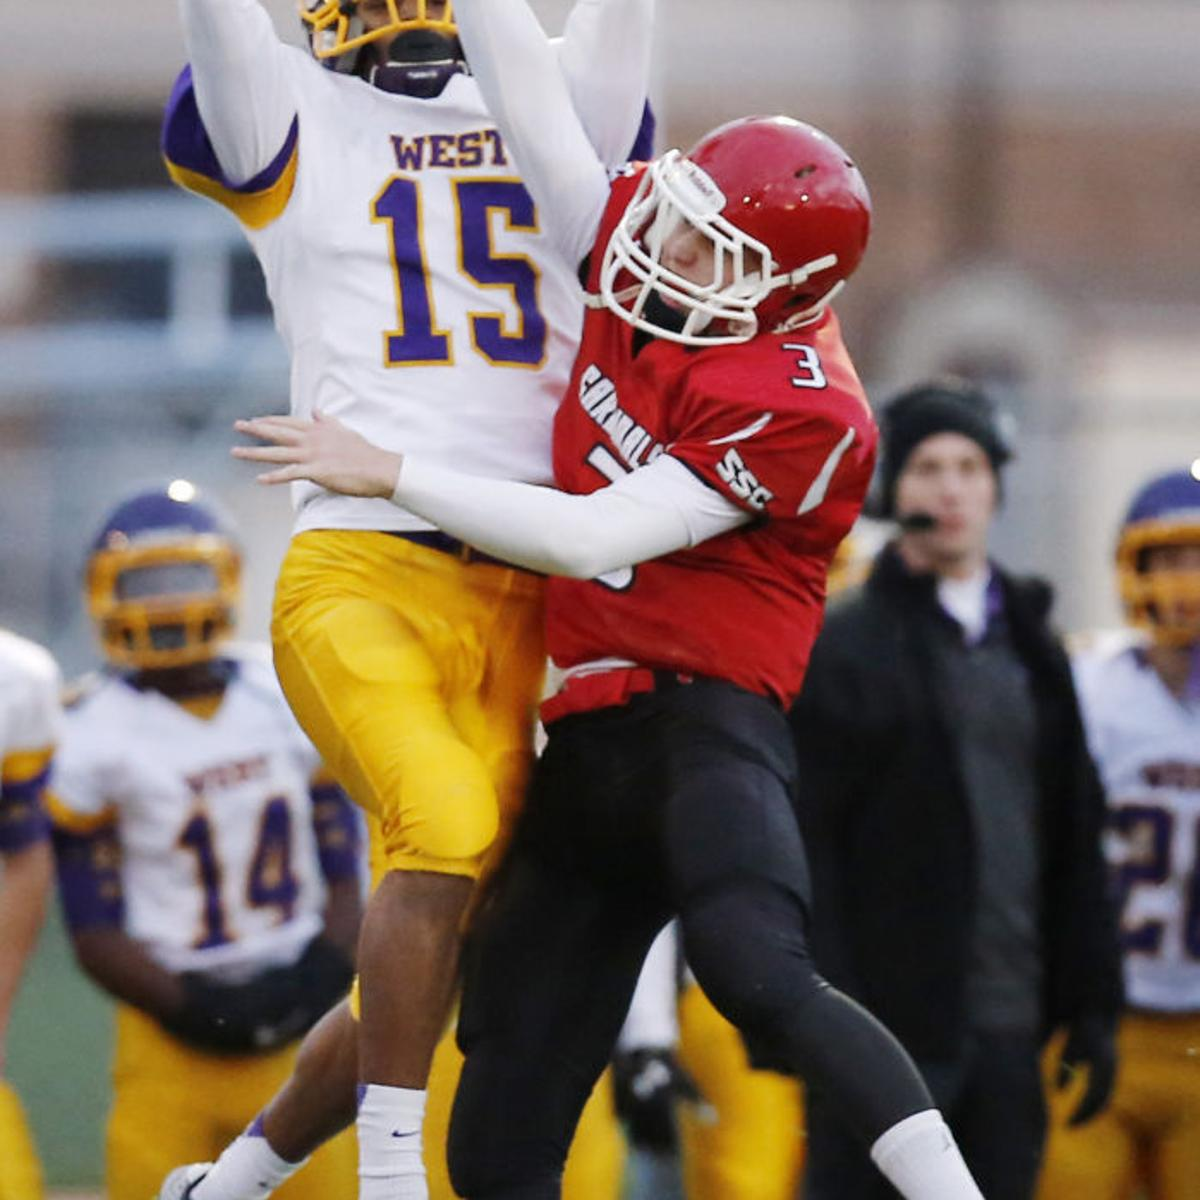 Photos Bellevue West At South Sioux City Football South Sioux City High School Siouxcityjournal Com